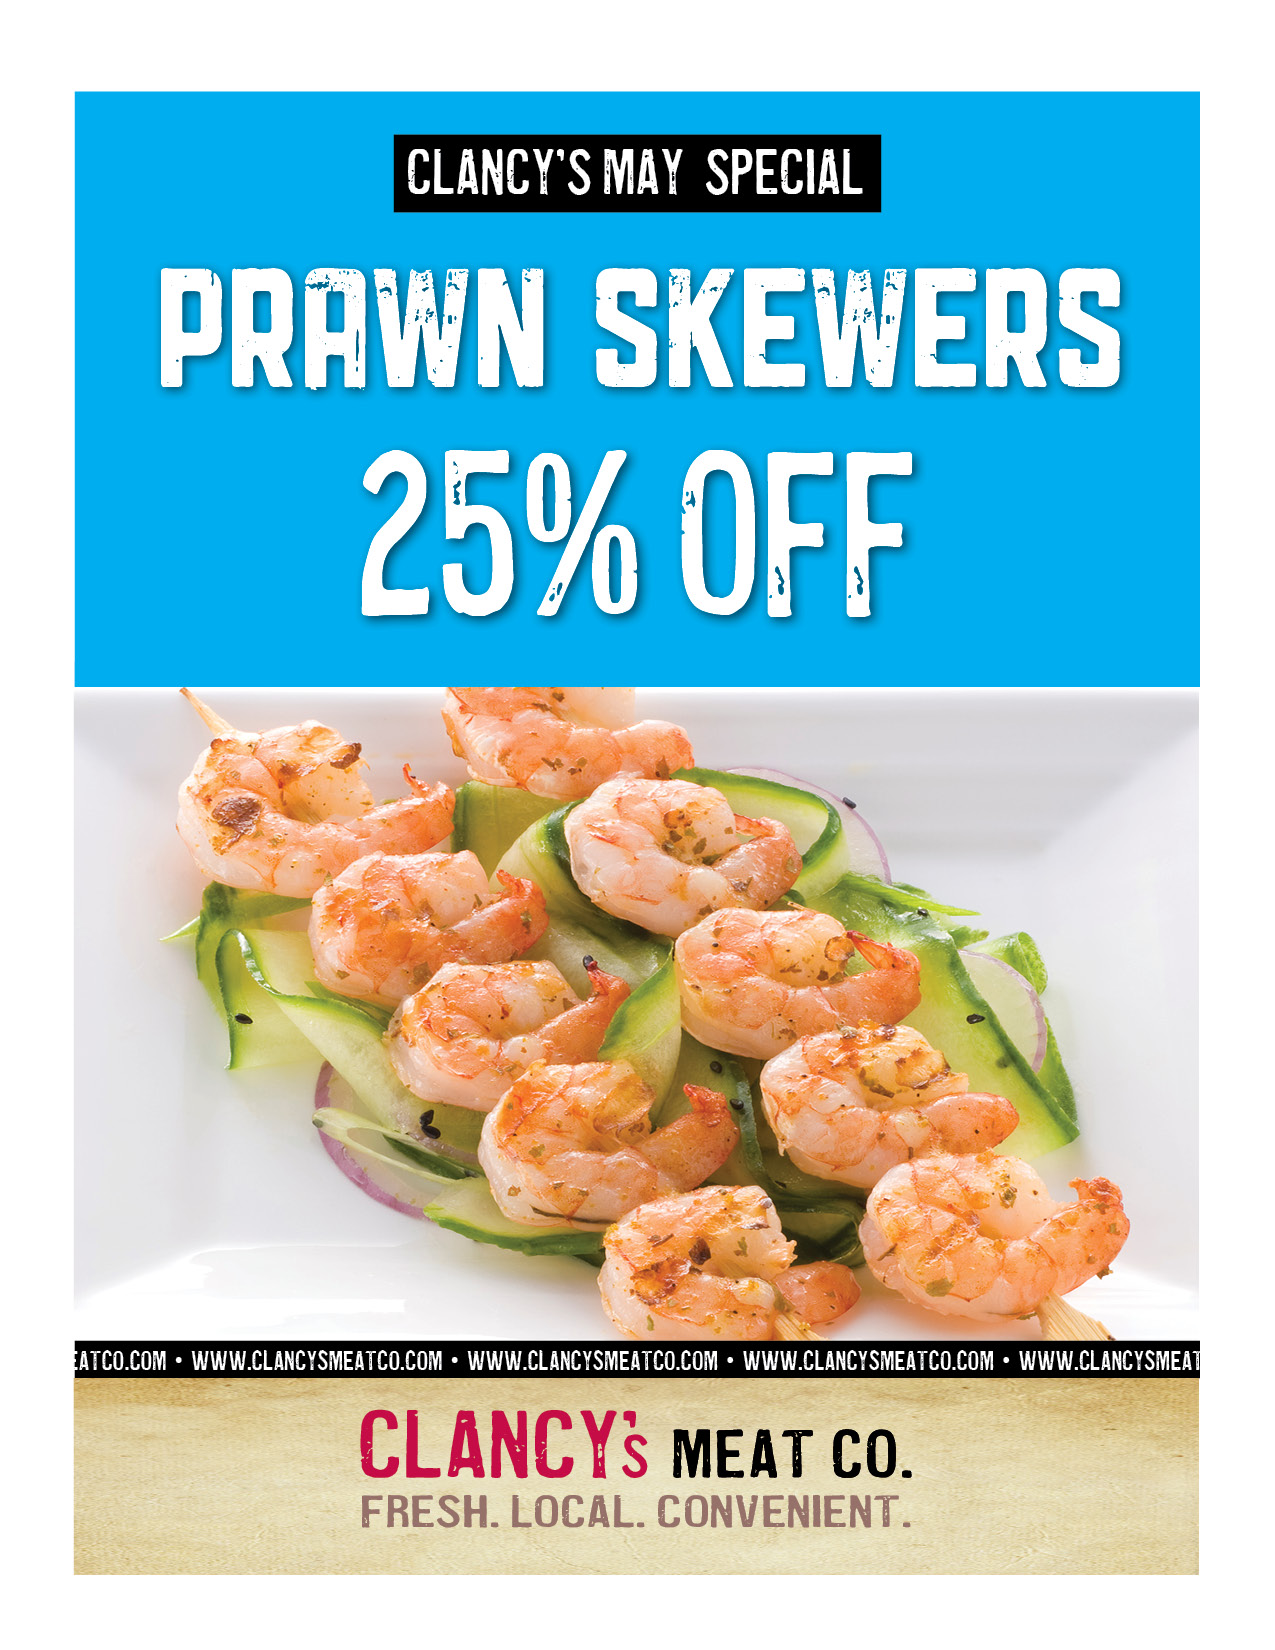 Clancys May 2019 Prawn Skewers Special.jpg